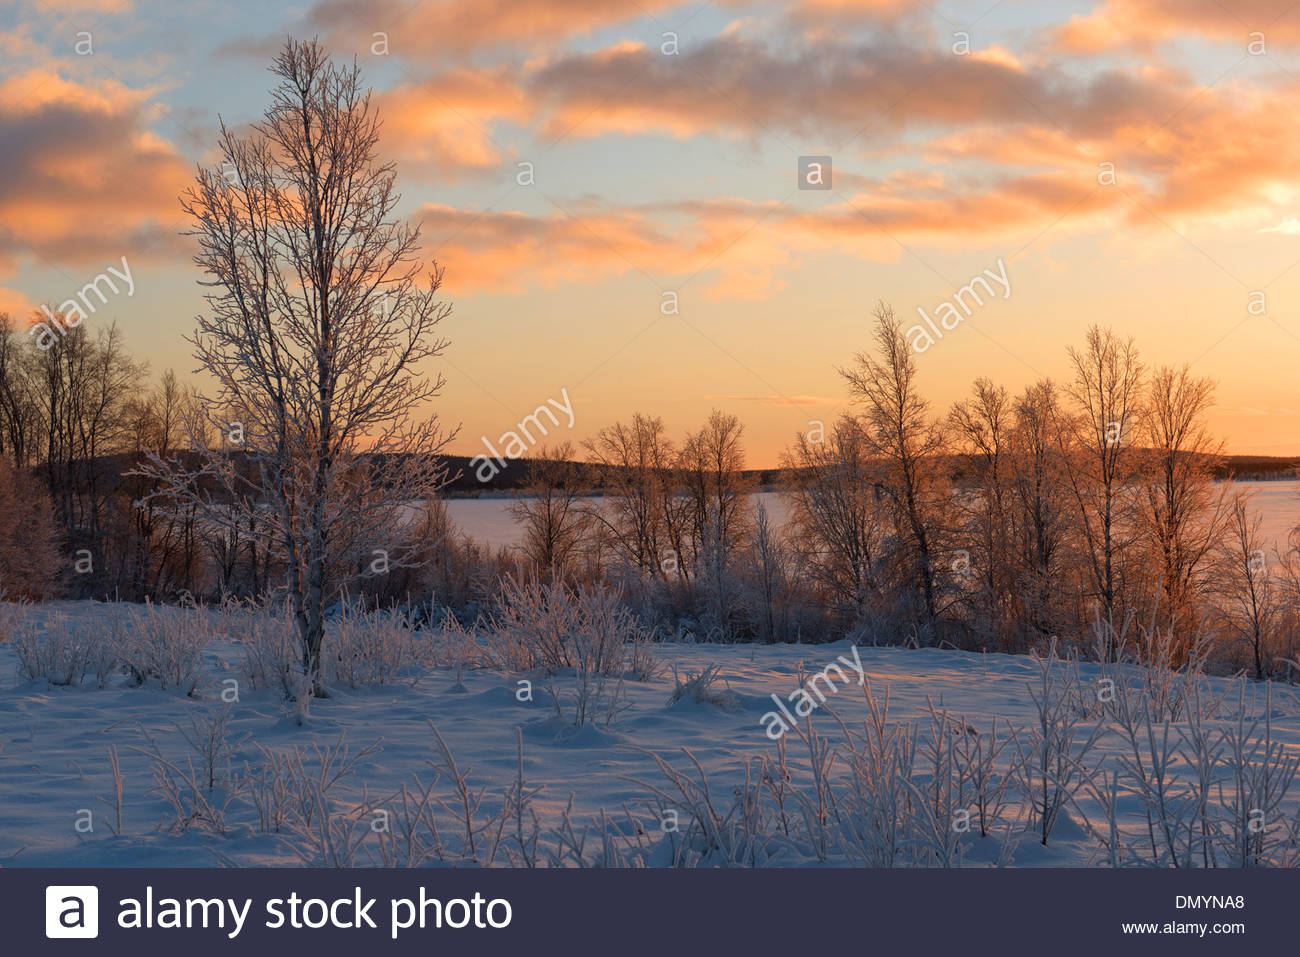 The stunning sunset across the fields and forests of Kiruna, Northern Sweden. - Stock Image